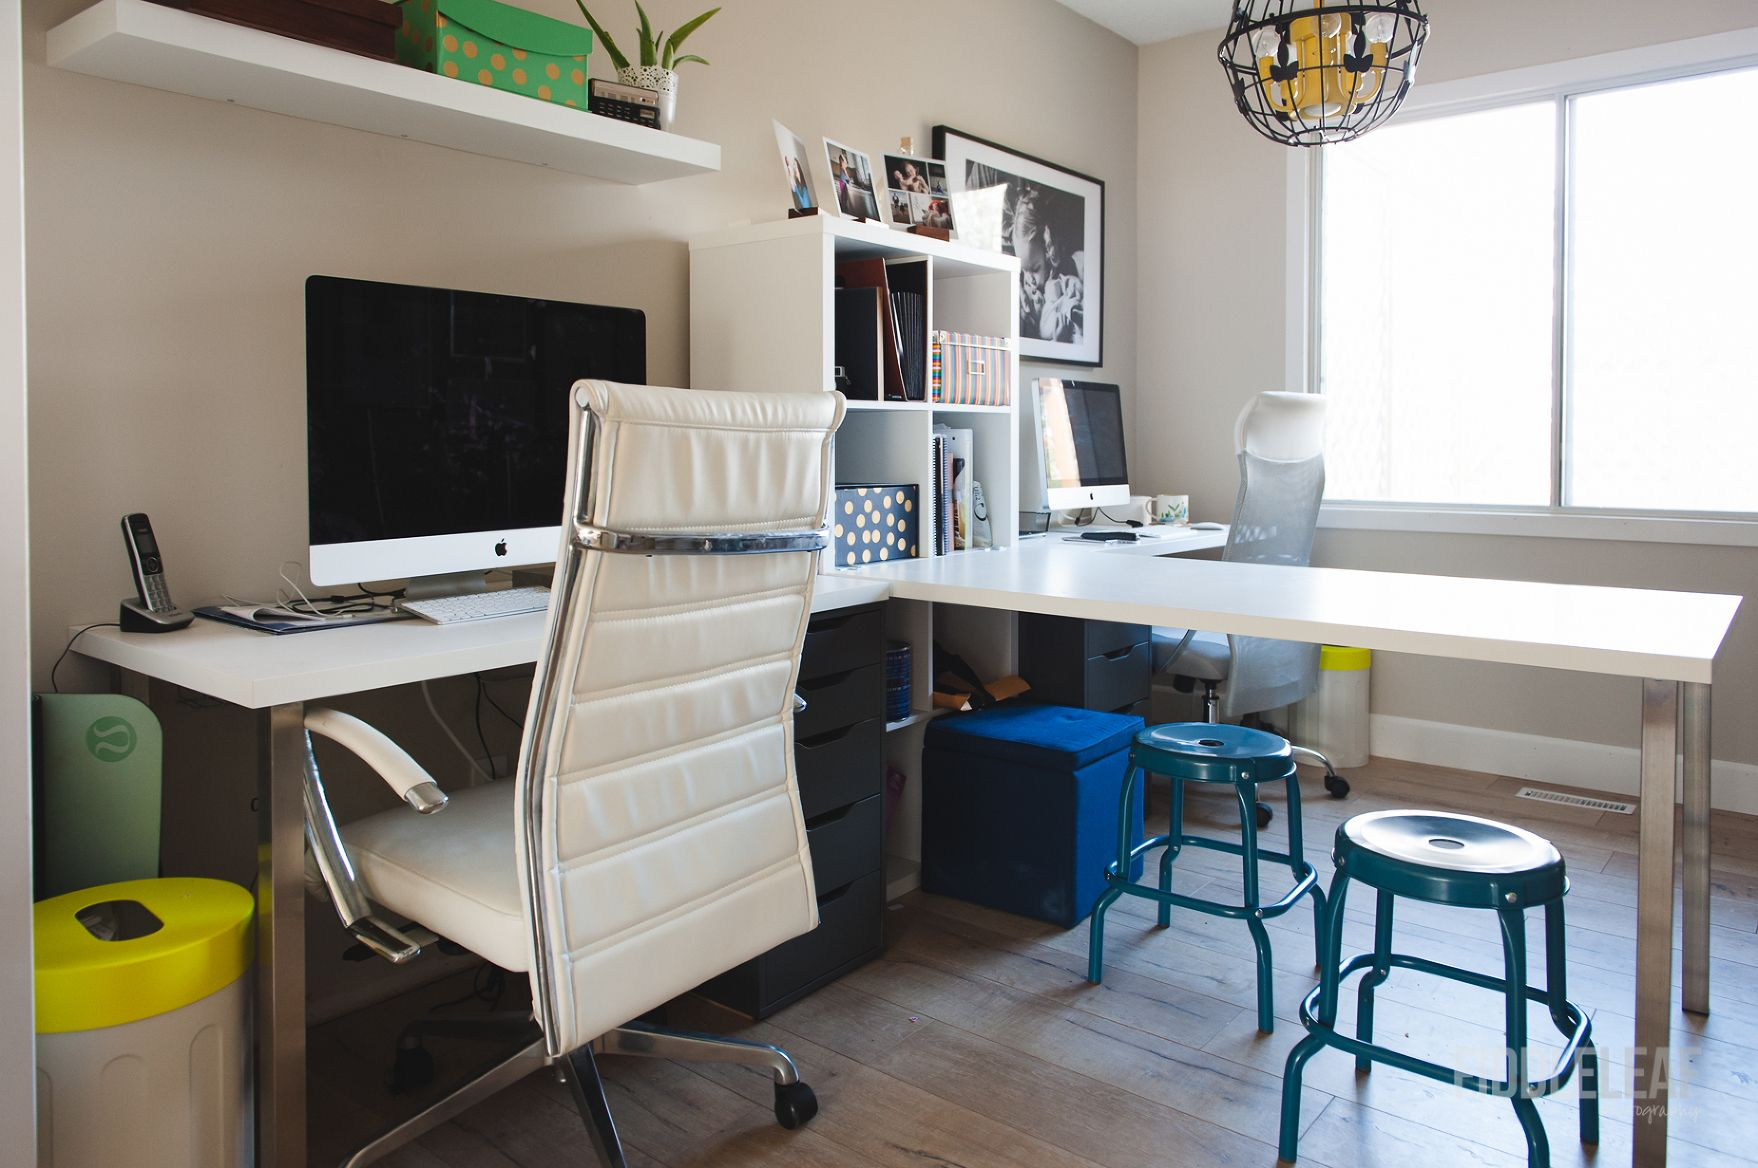 2 person ikea desk setup photography office office space